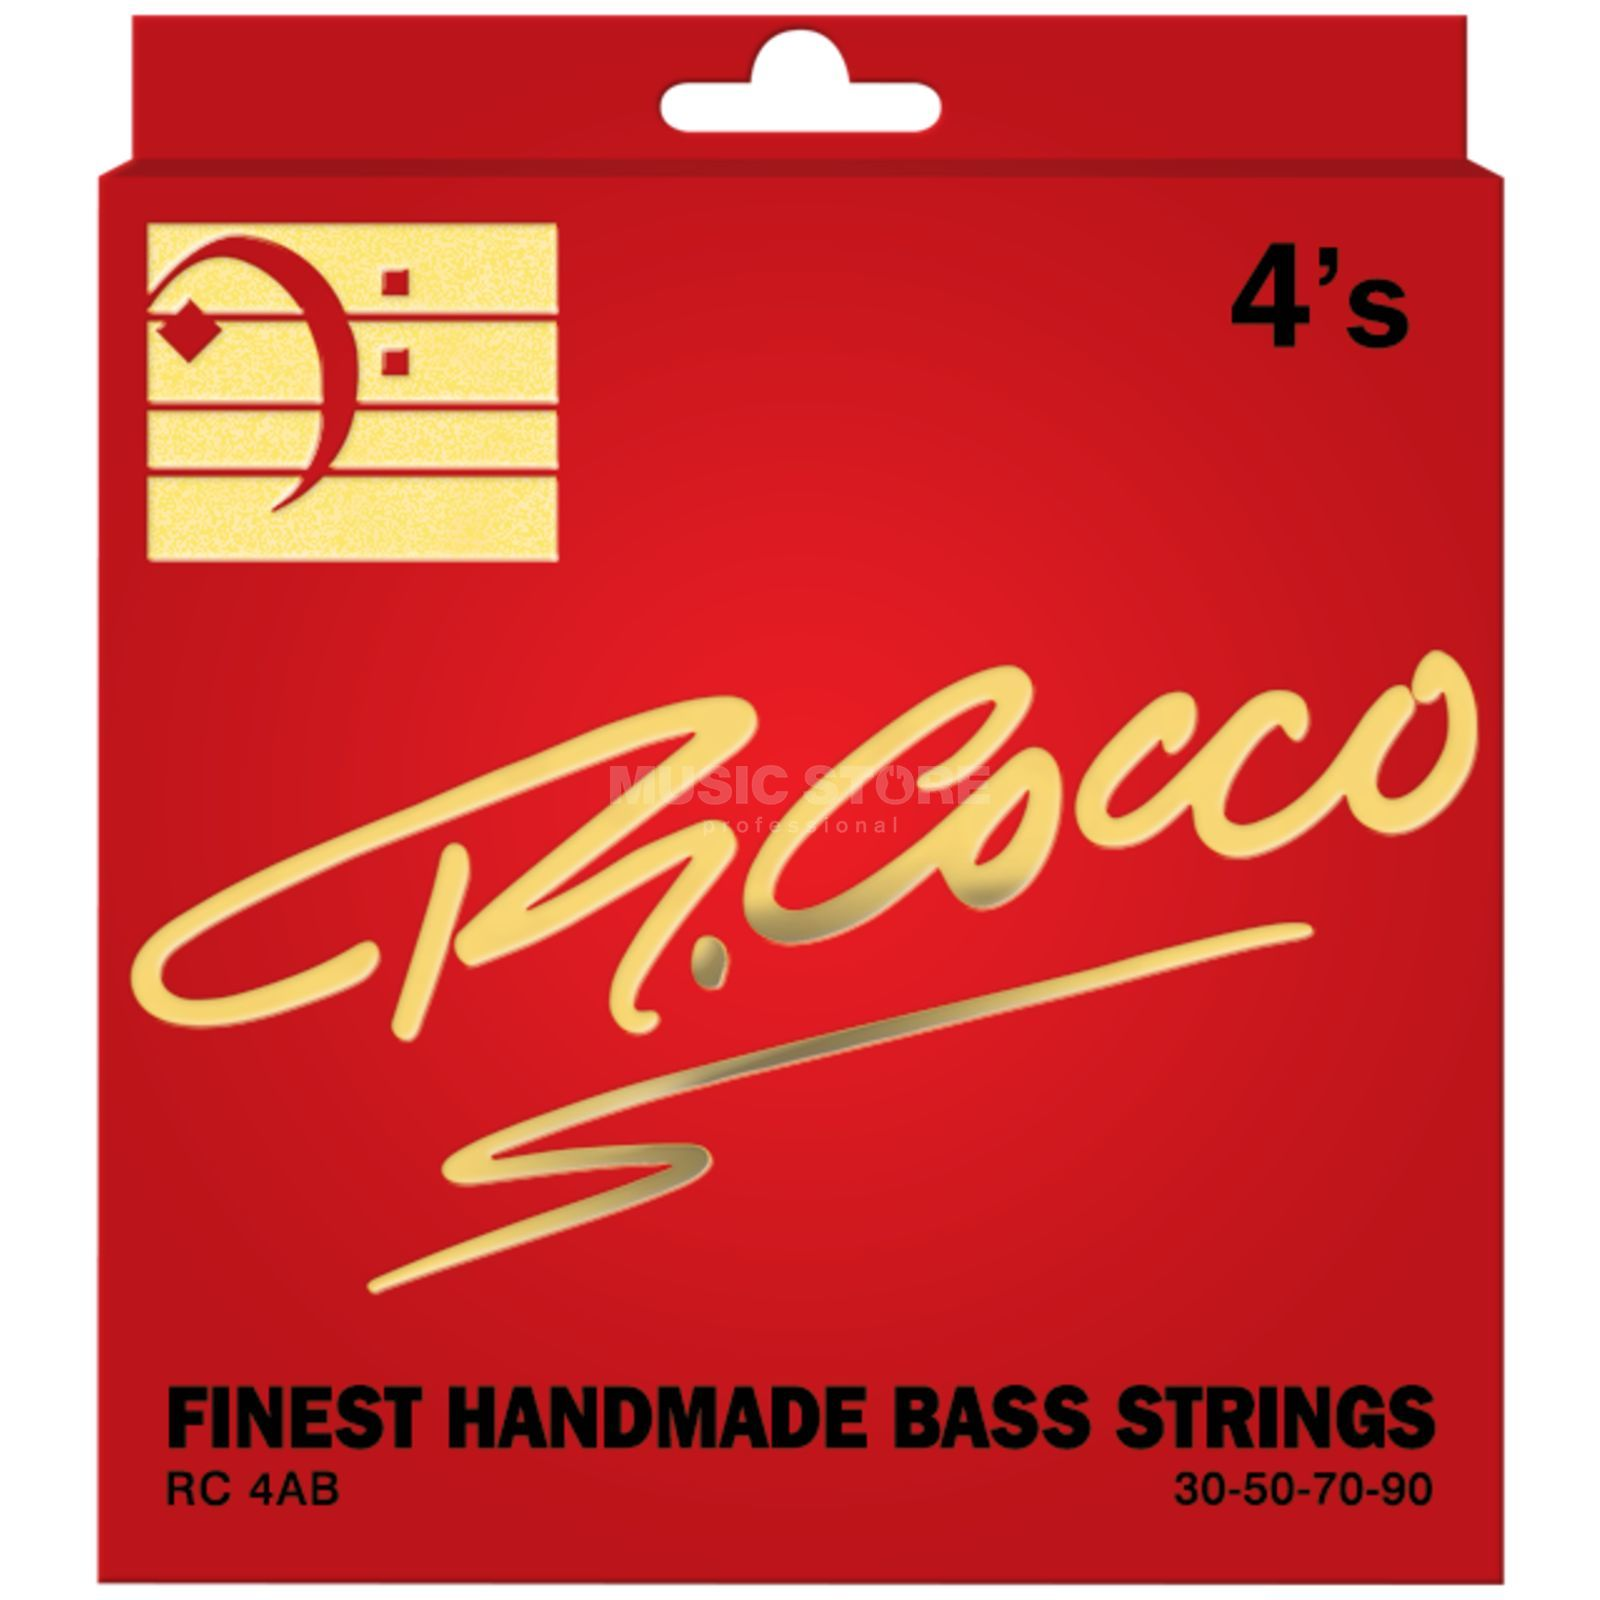 Cocco RC4AB Bass Strings 30-90 4 Set, 30-50-70-90 Classic Wound Изображение товара